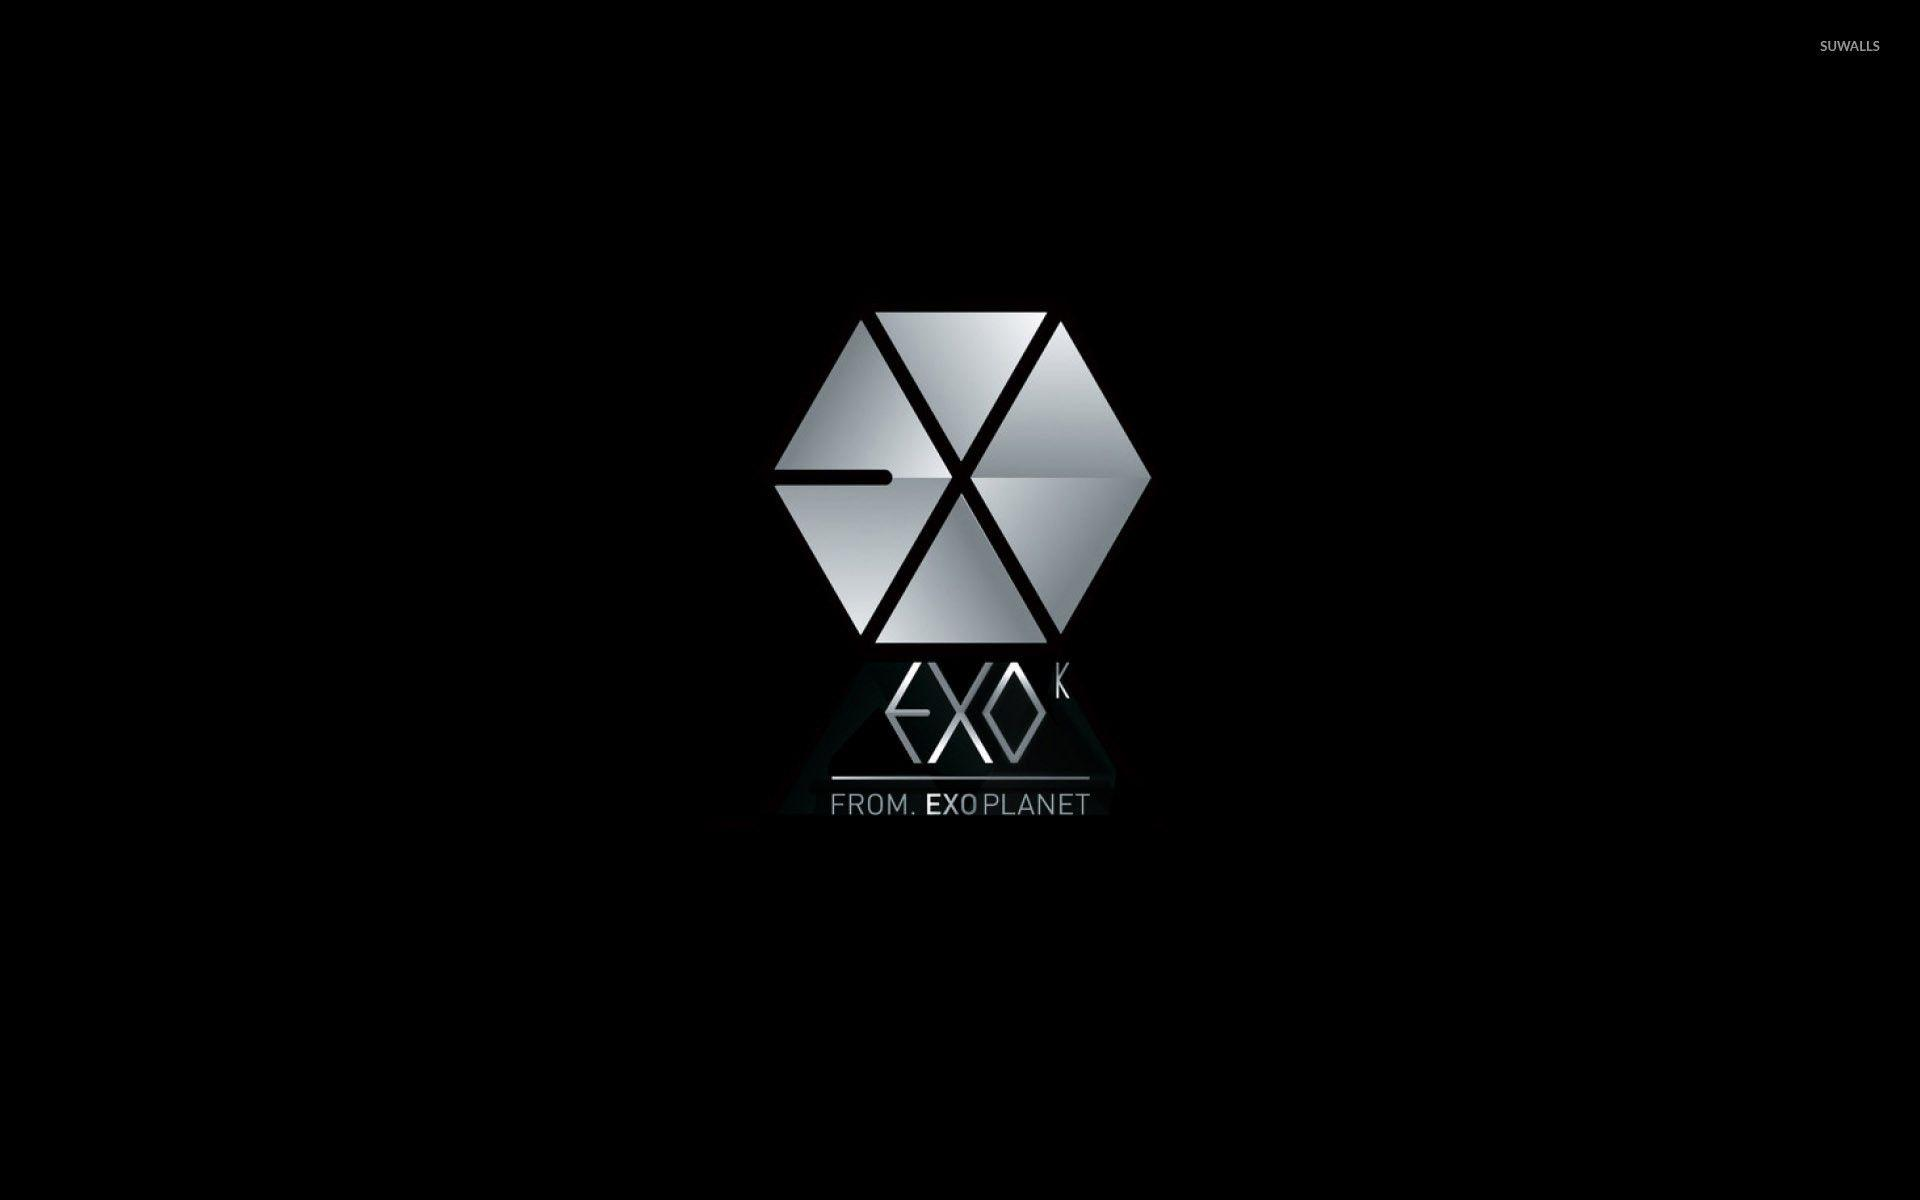 Exo Aesthetic Pc Wallpapers Wallpaper Cave